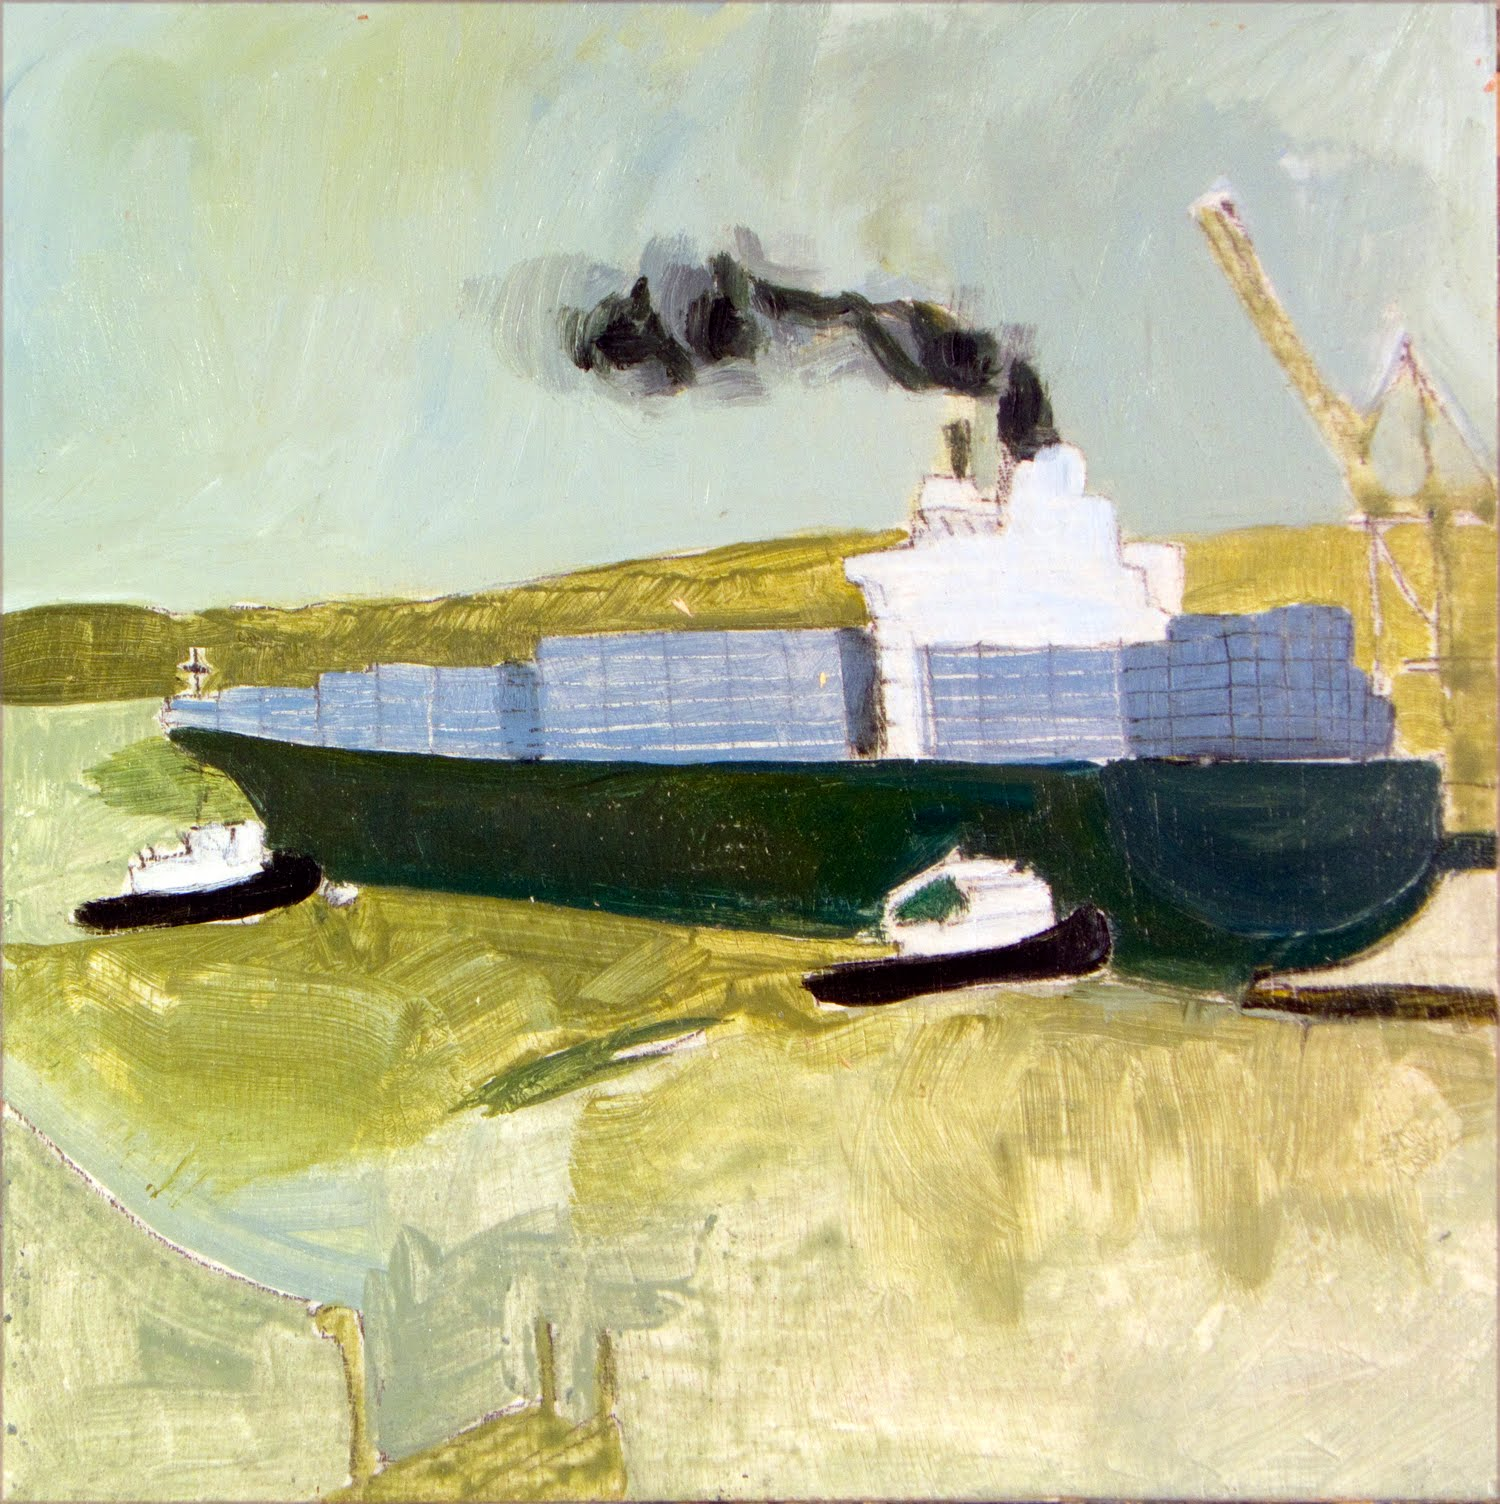 Brian Sloan, artist, painting, art, acrylic paint, Container Ship